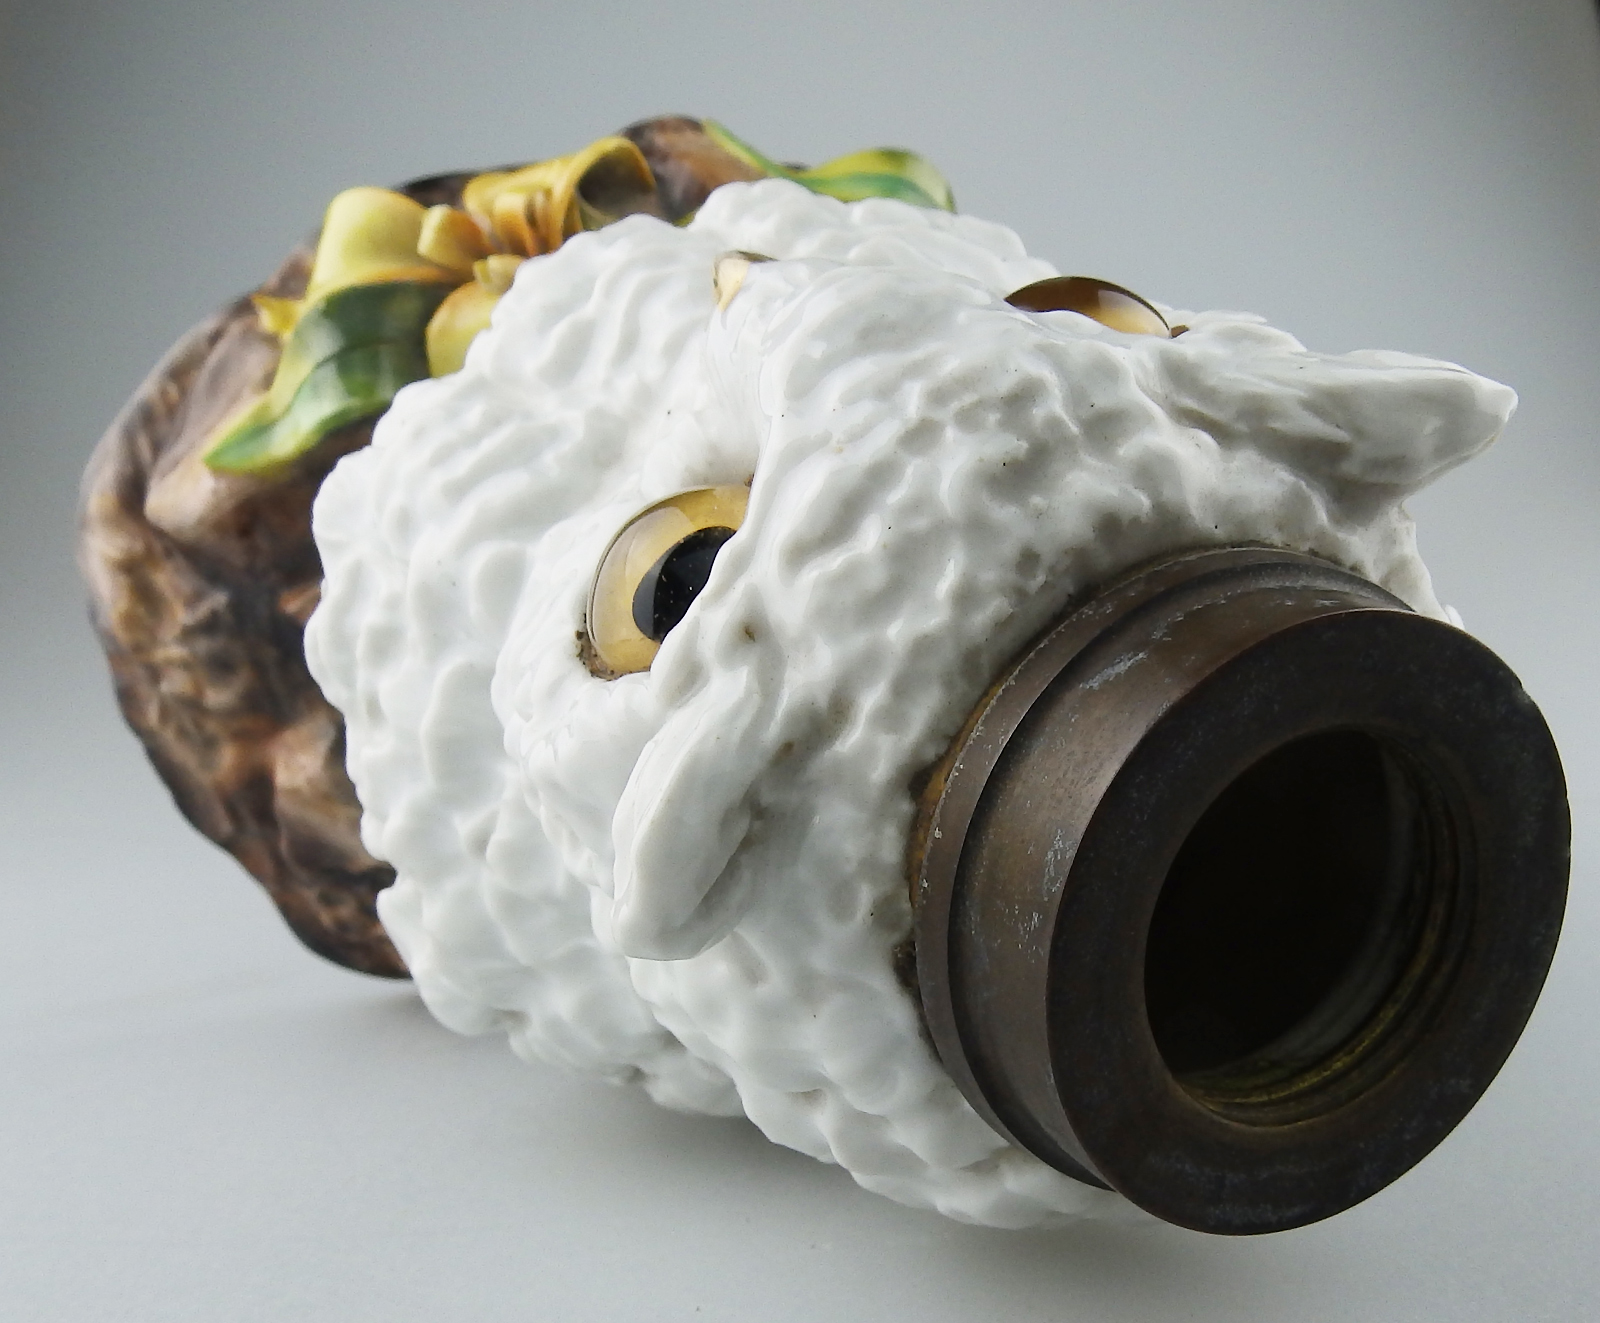 Novelty Lamp Base : Antique Porcelain : Superior Novelty owl Oil Lamp Base C.19thC For Sale Antiques.com Classifieds